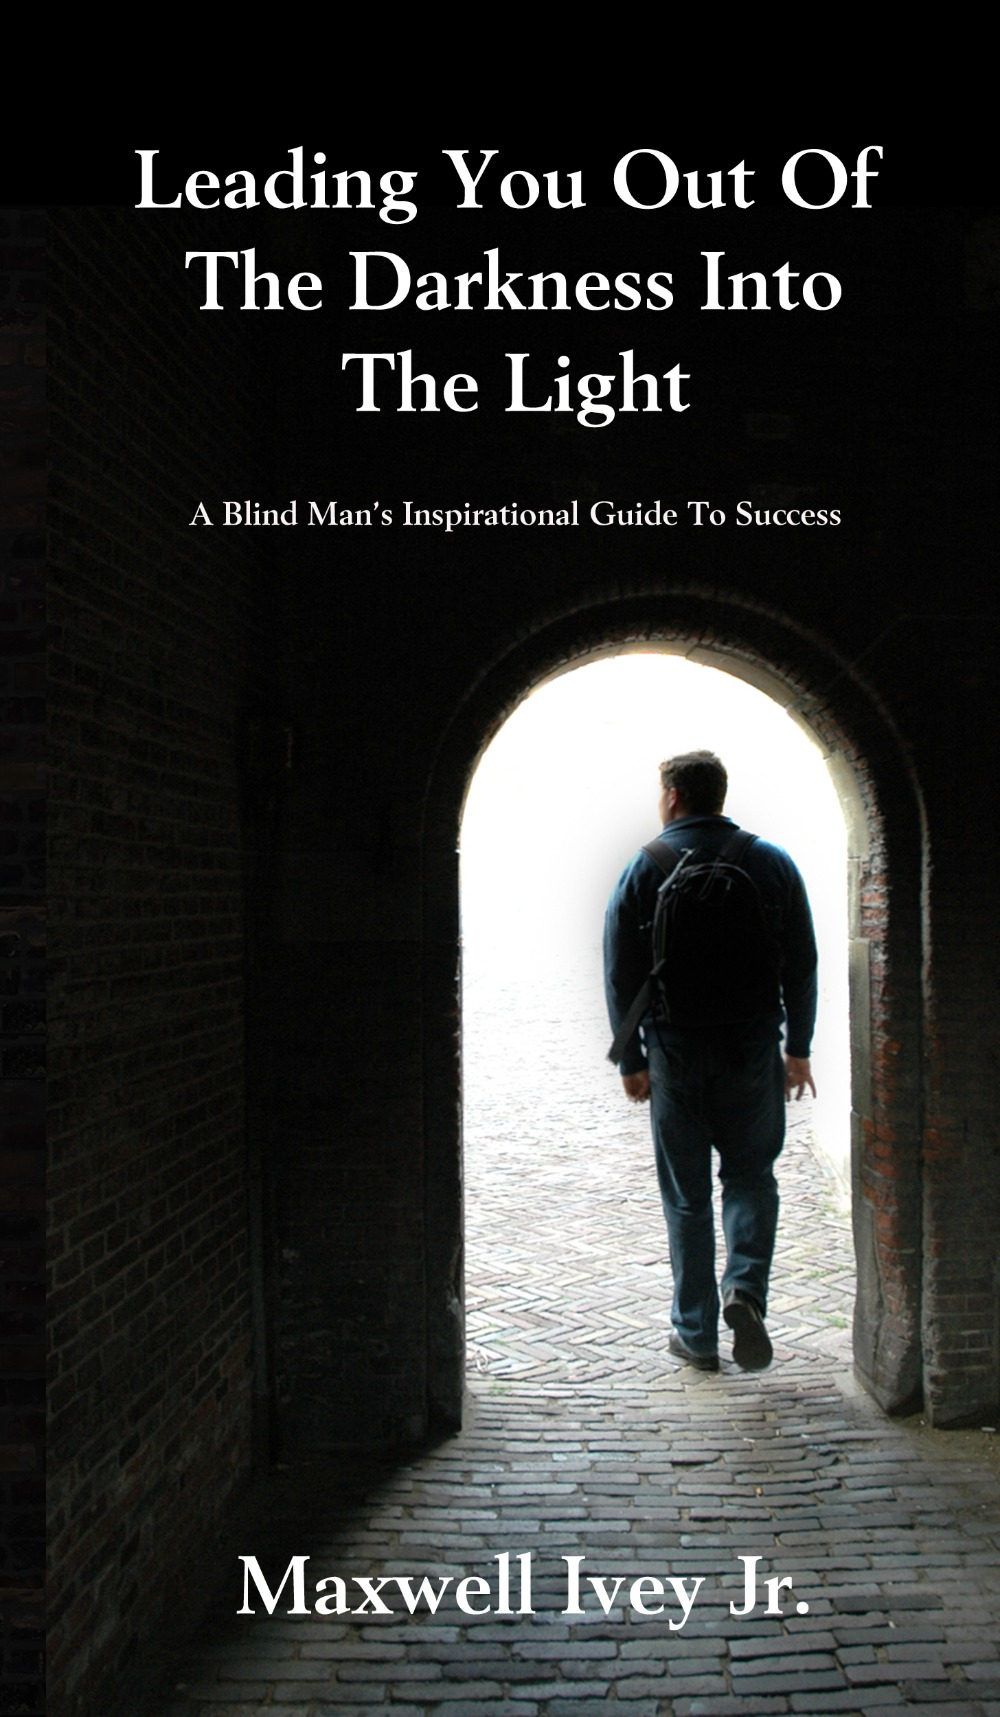 Leading You Out of the Darkness Into the Light